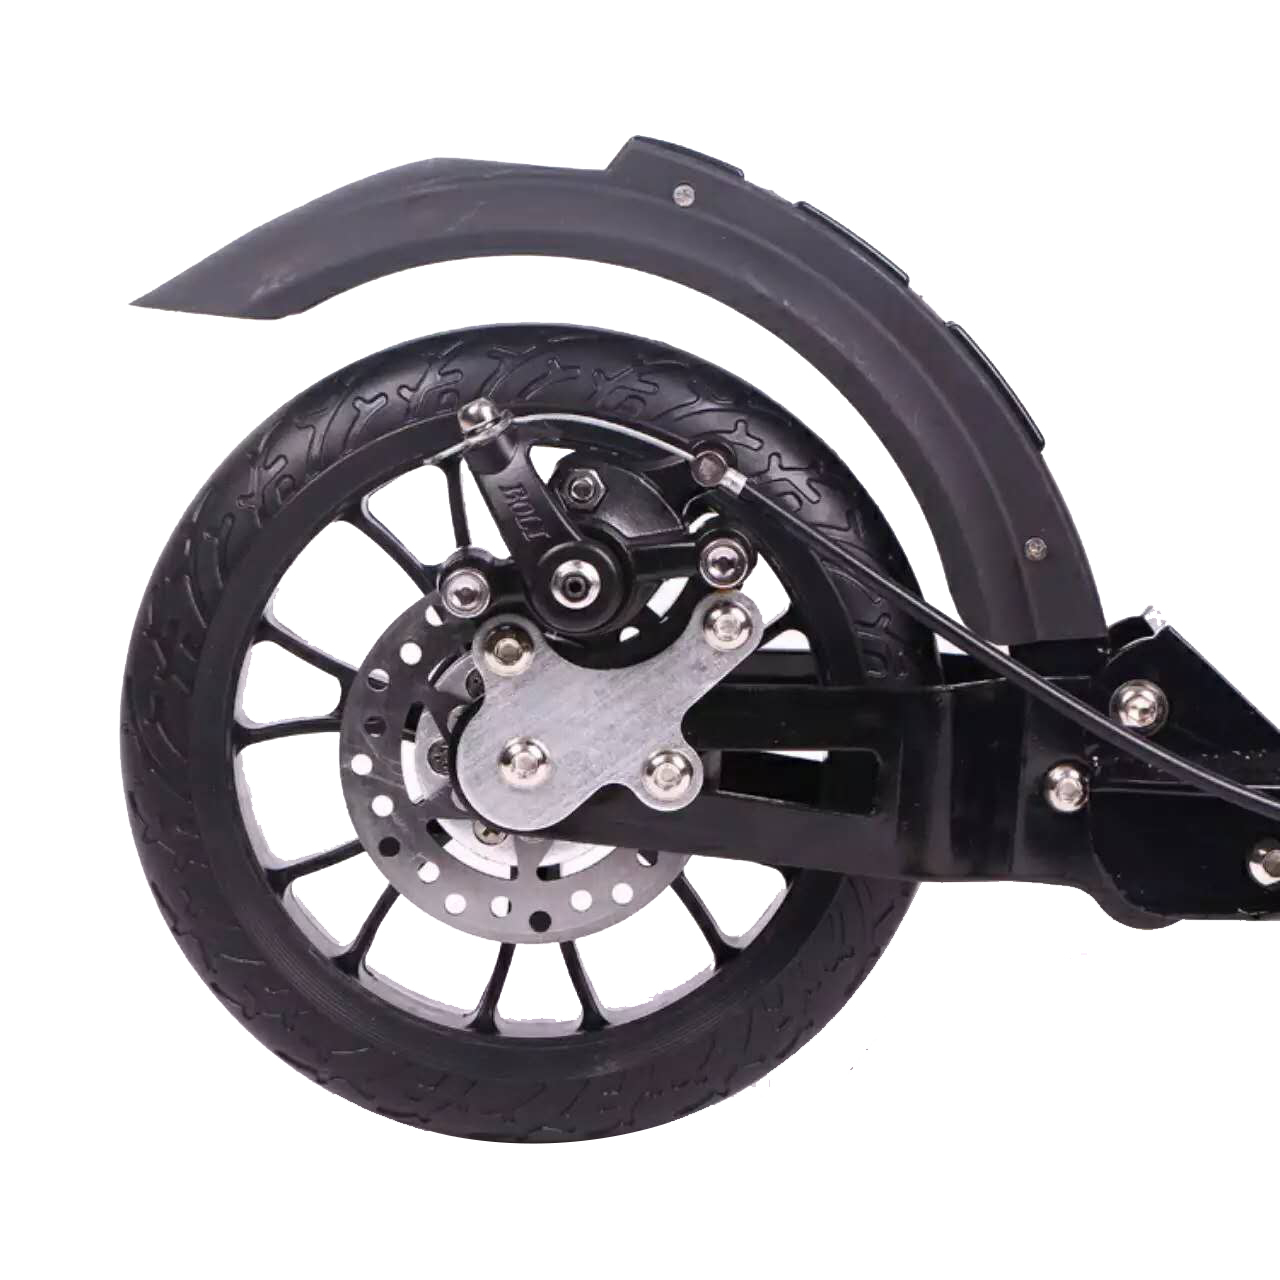 200mm Wheels Scooter L-200-2H